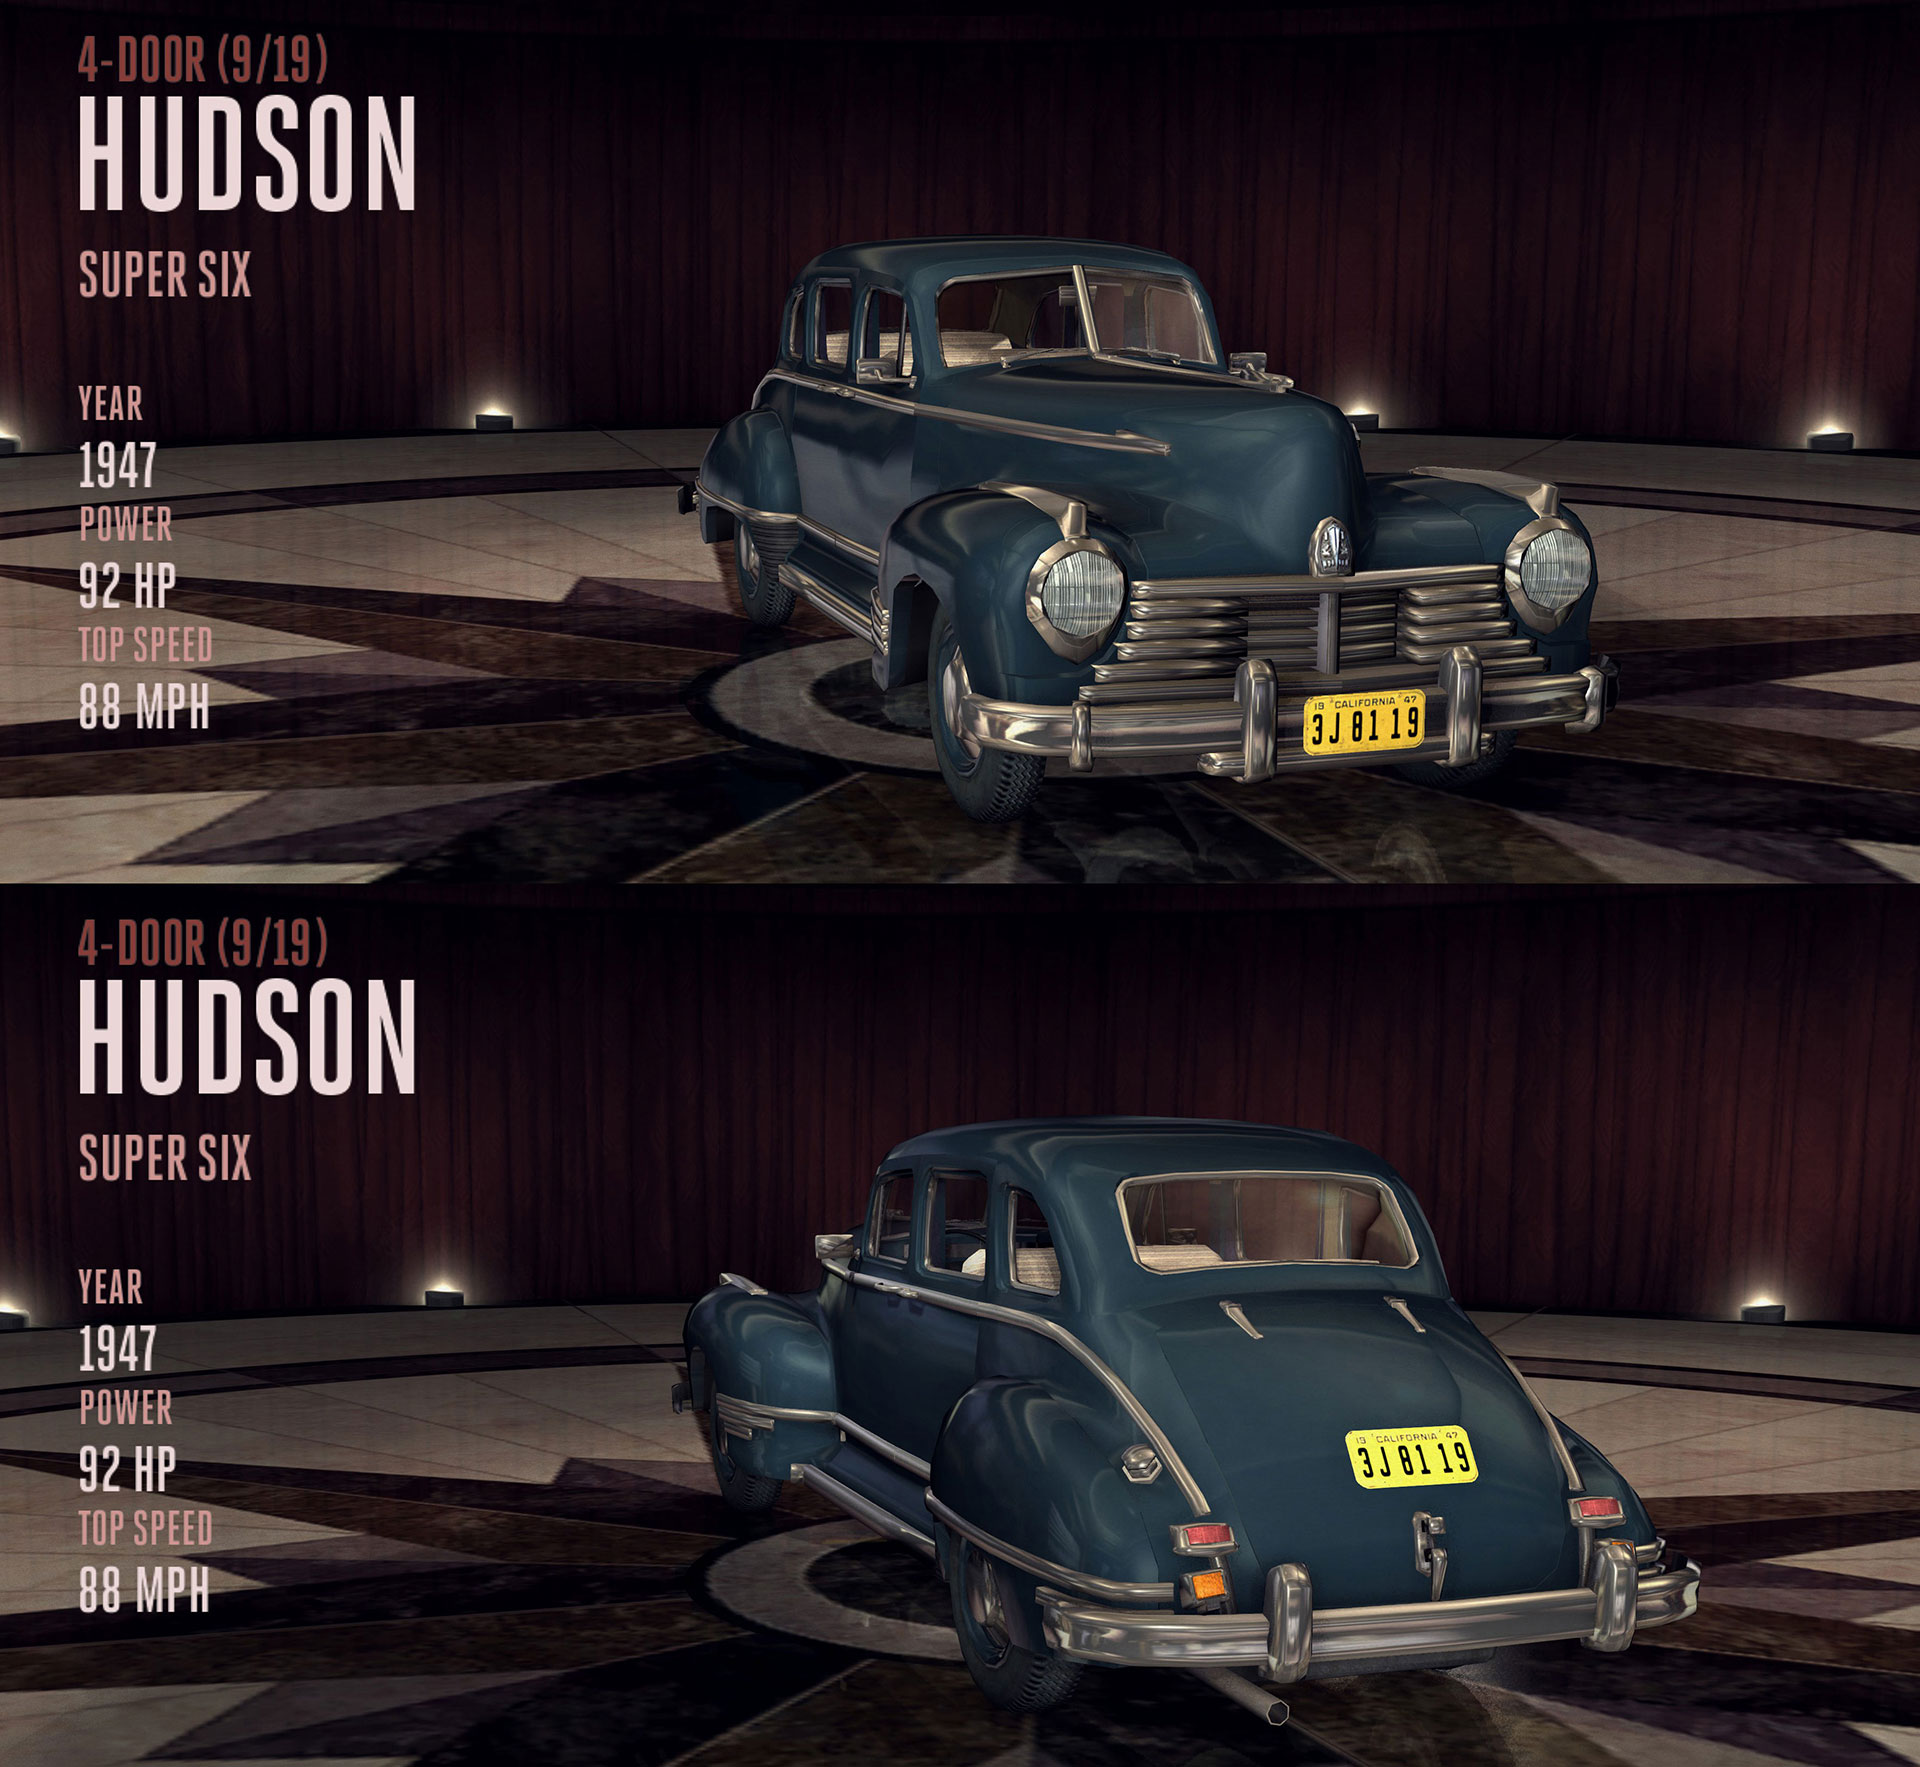 File:1947-hudson-super-six.jpg